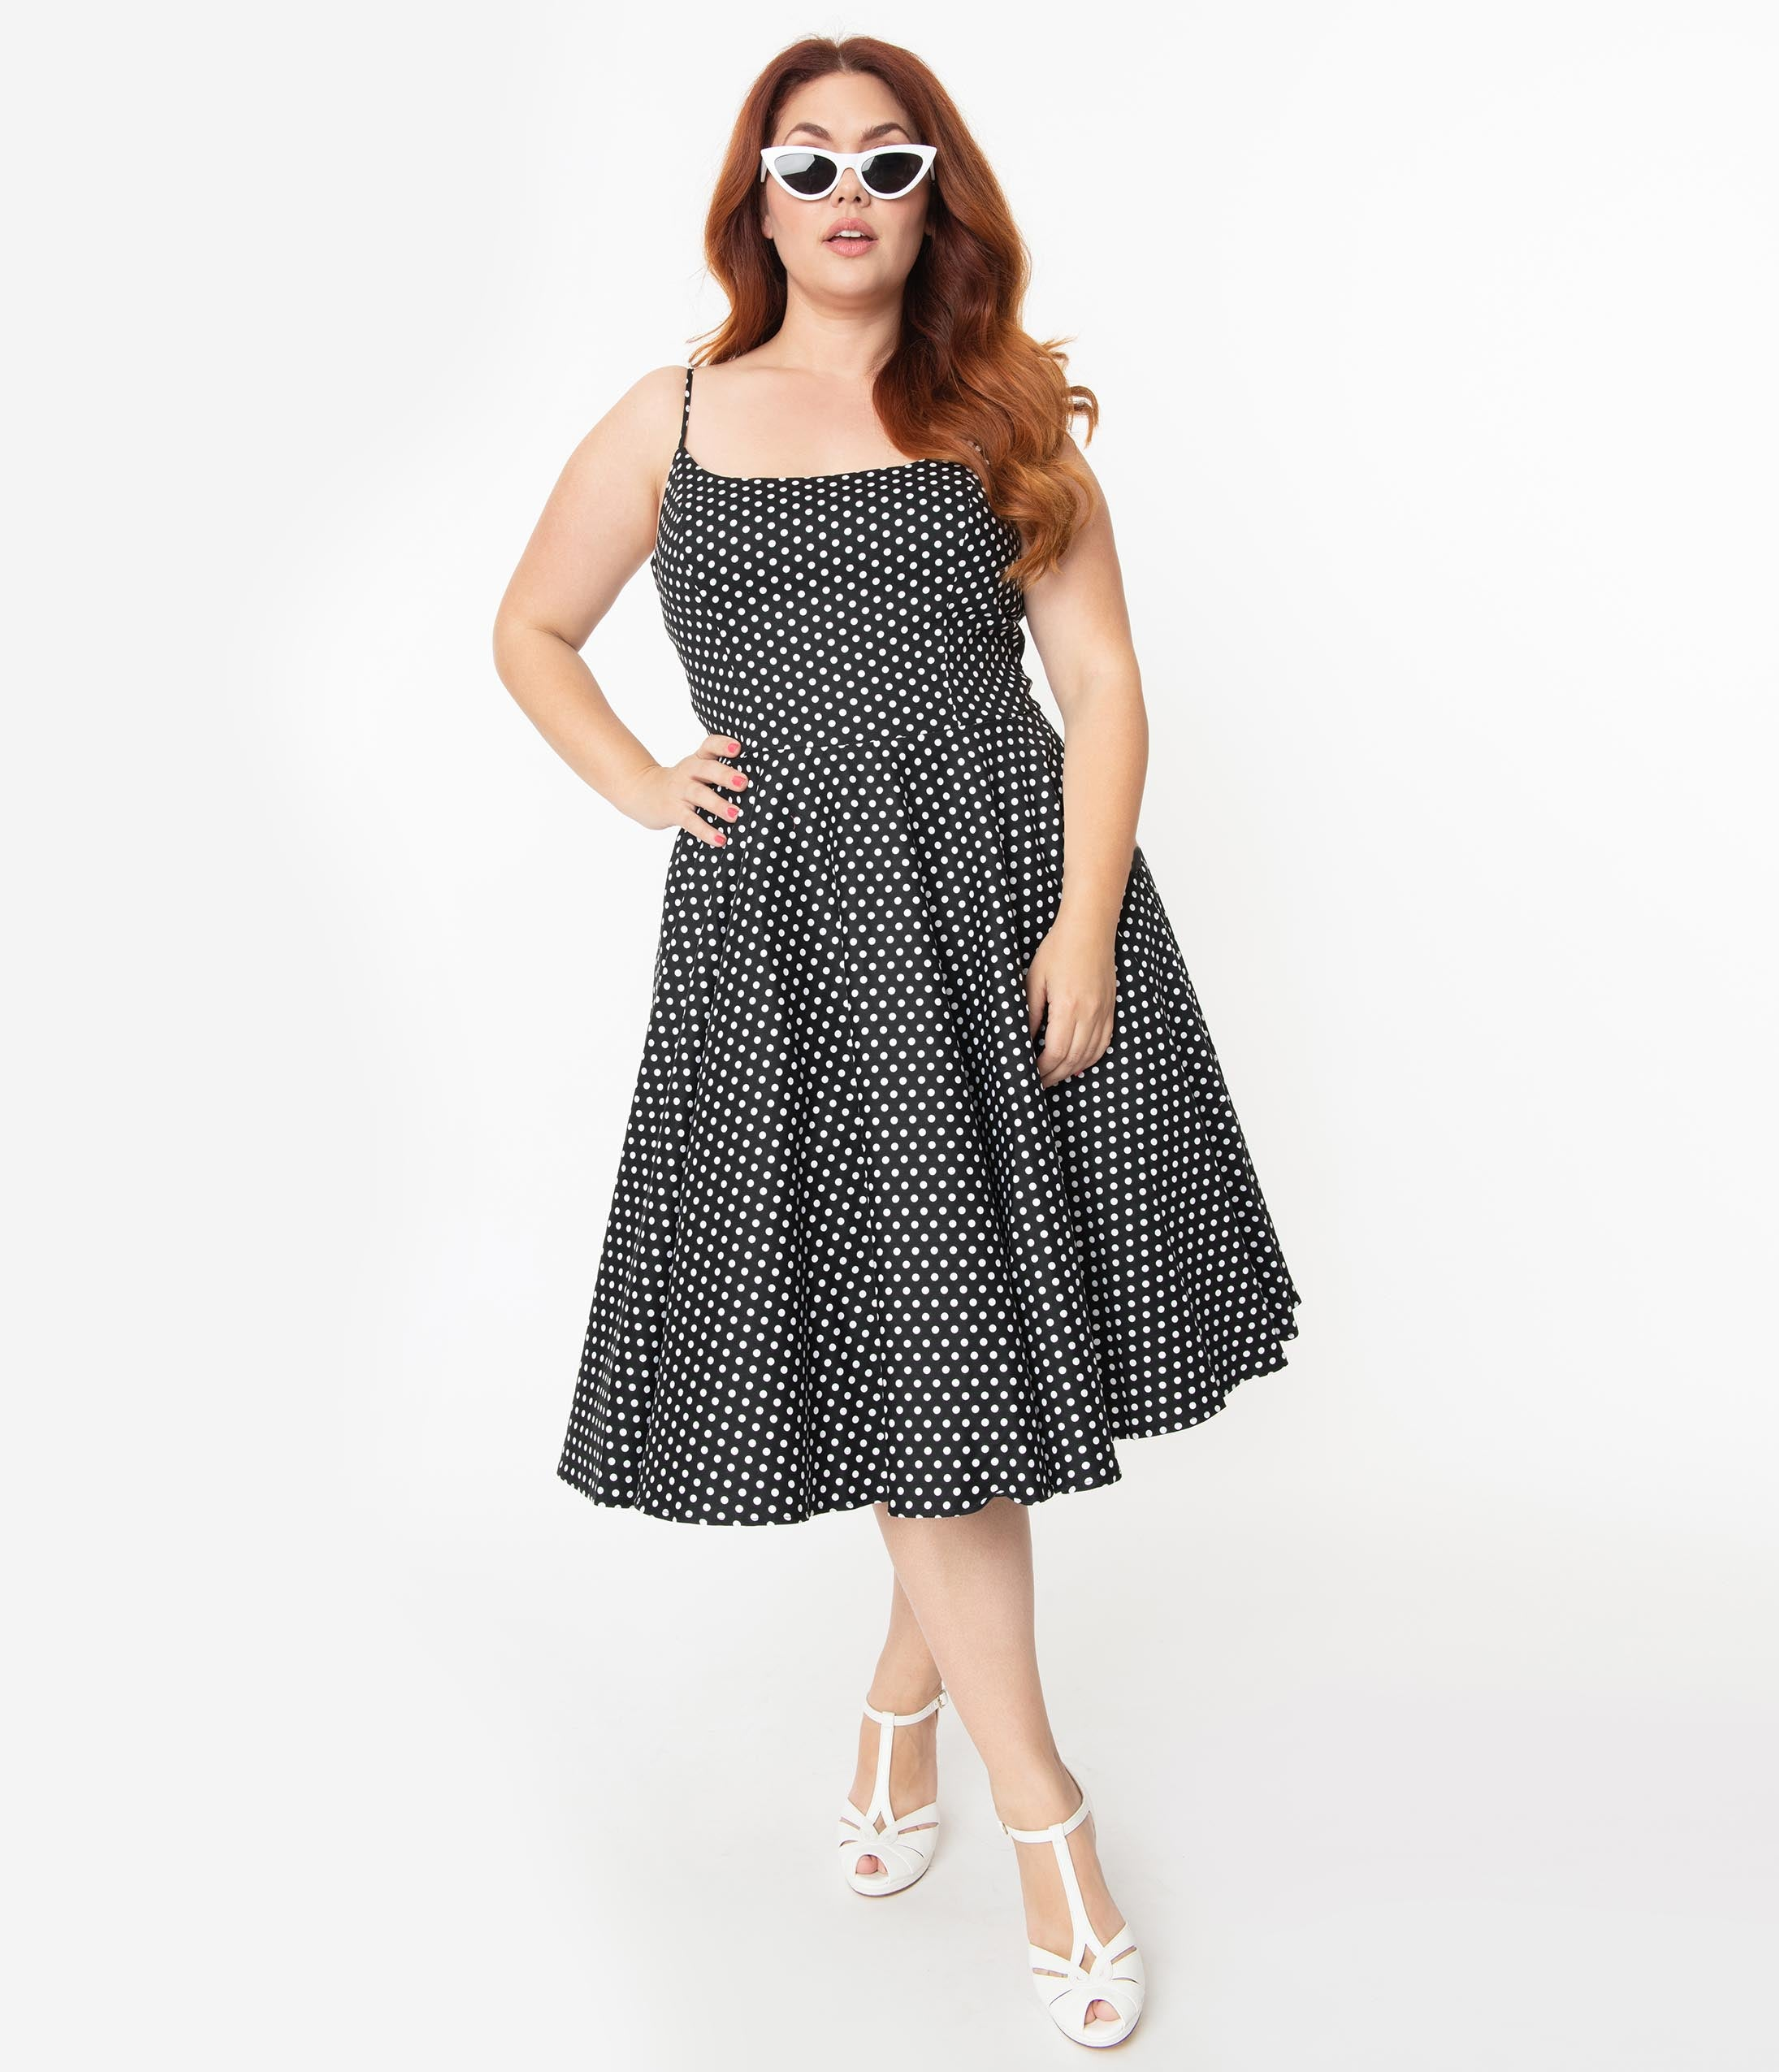 1950s Dresses, 50s Dresses | 1950s Style Dresses Plus Size 1950S Black  White Polka Dot Sleeveless Peggy Swing Dress $98.00 AT vintagedancer.com